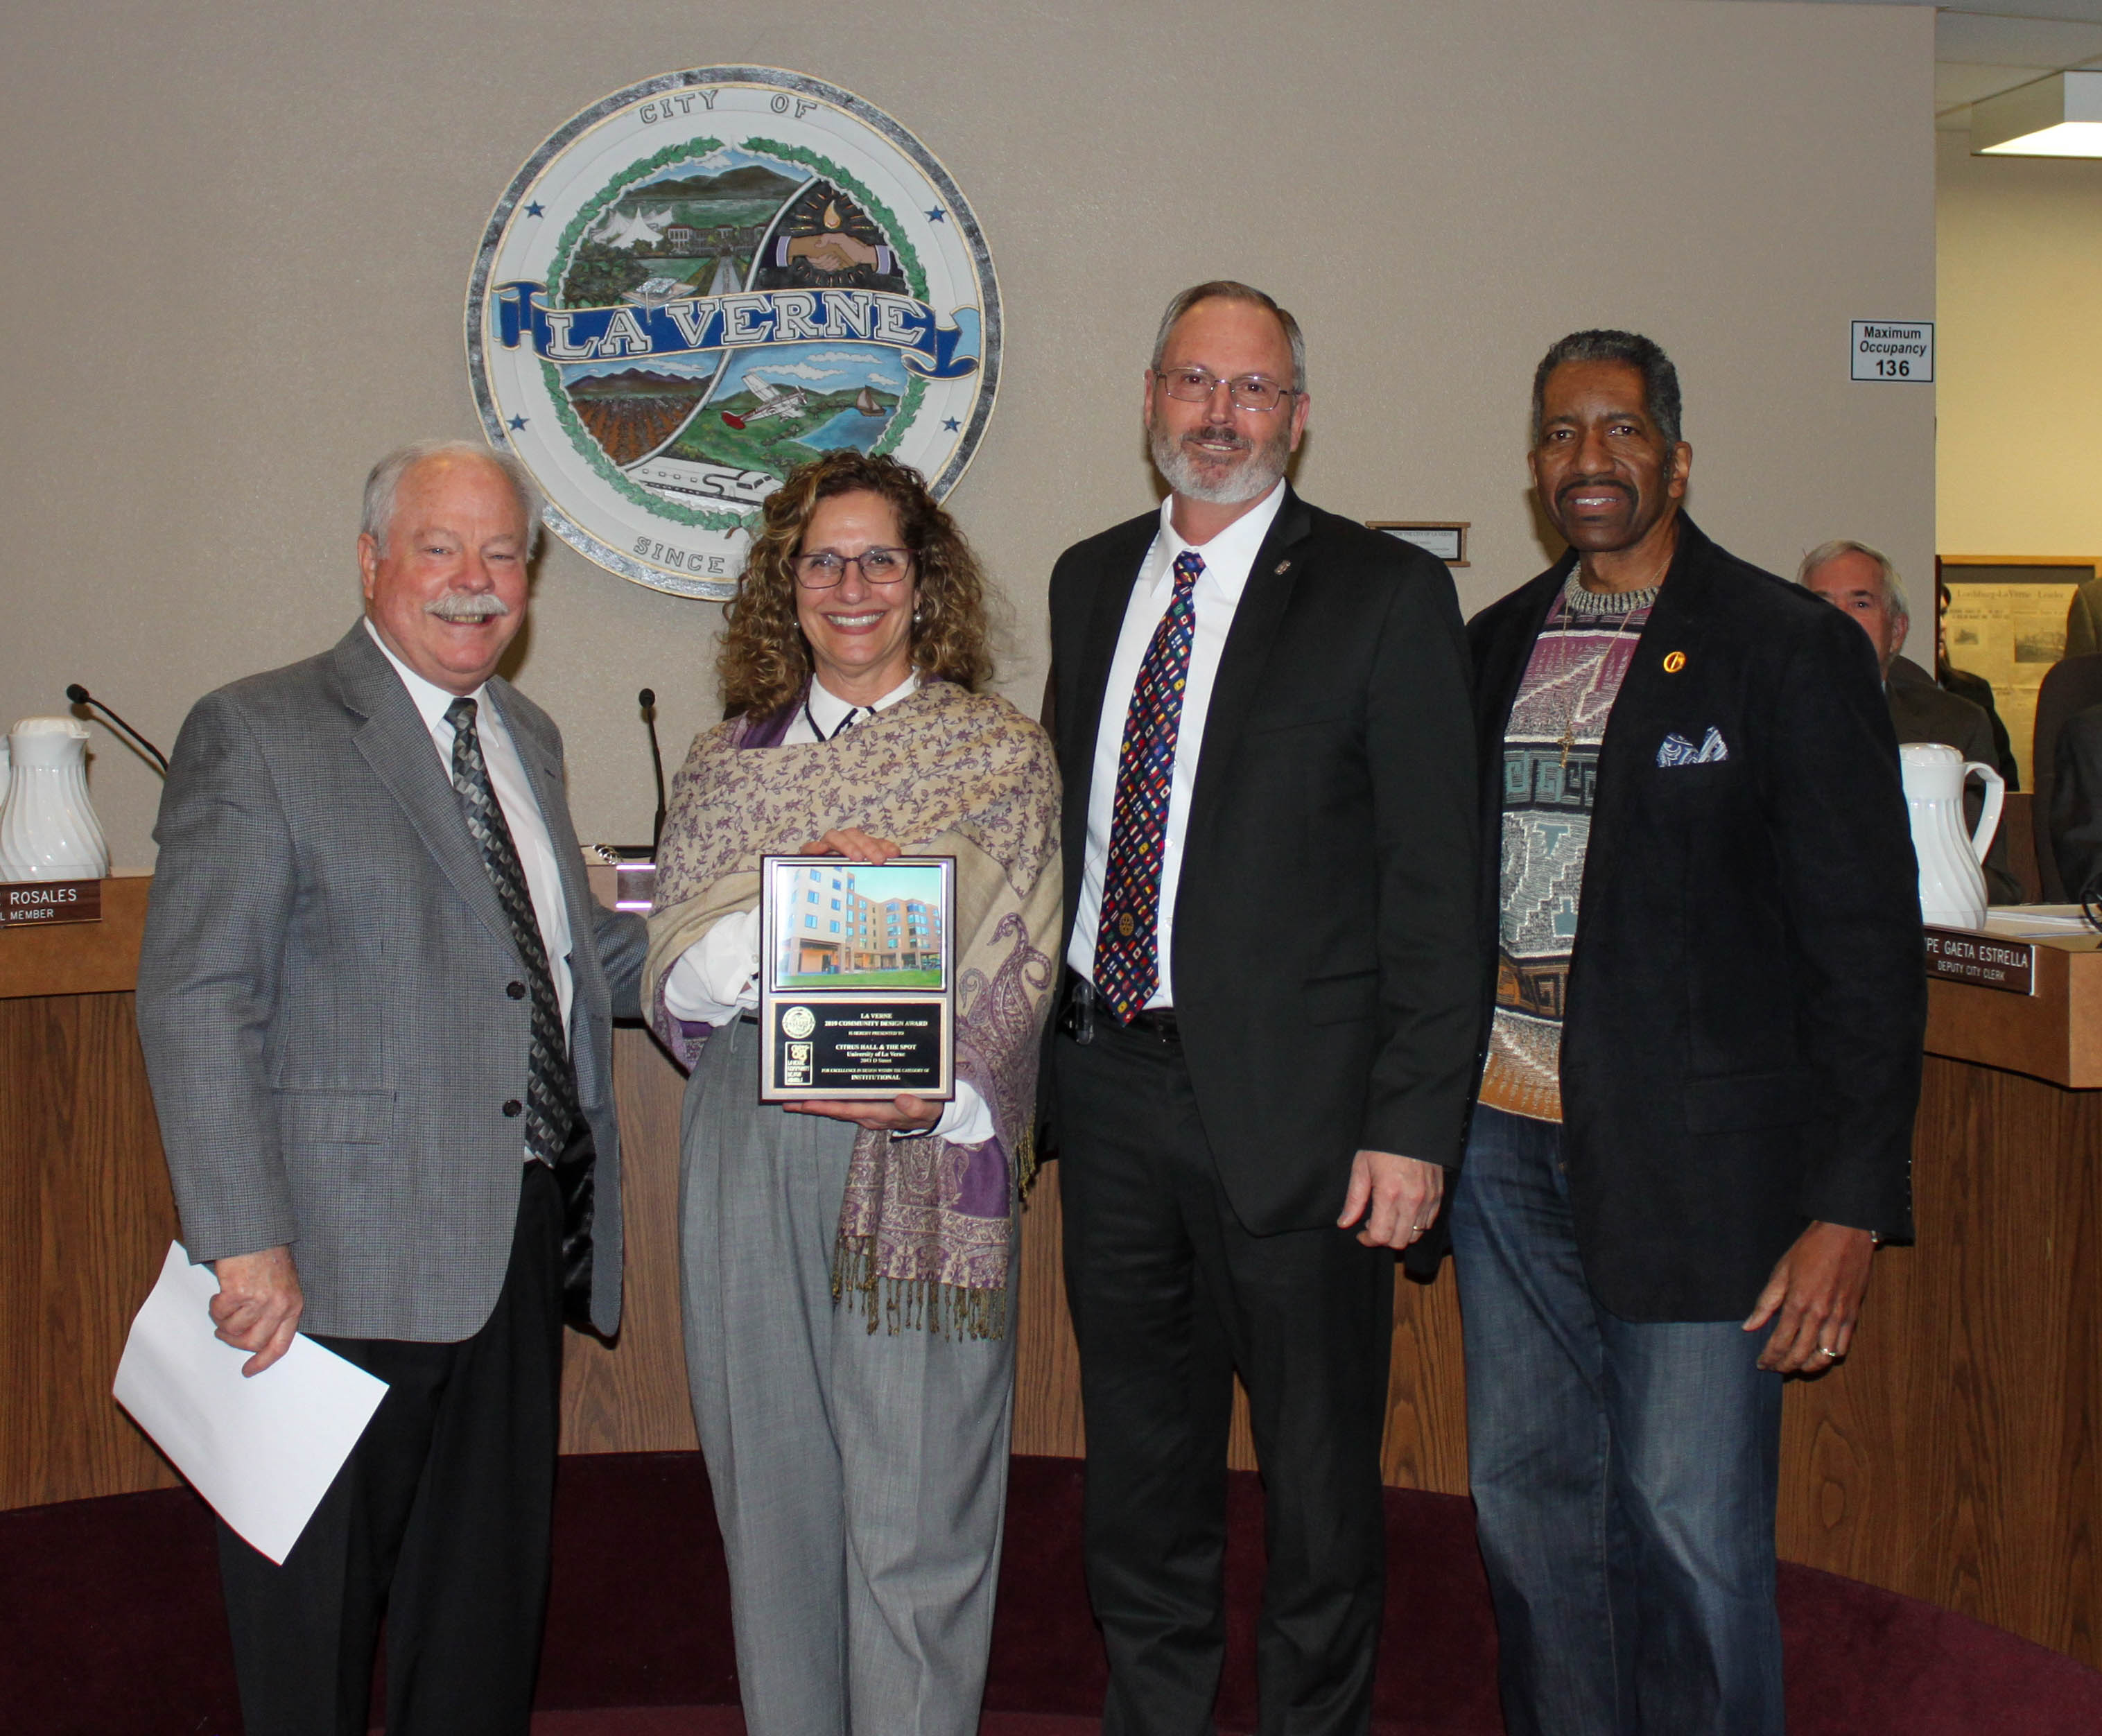 University President Devorah Lieberman poses with City of La Verne award